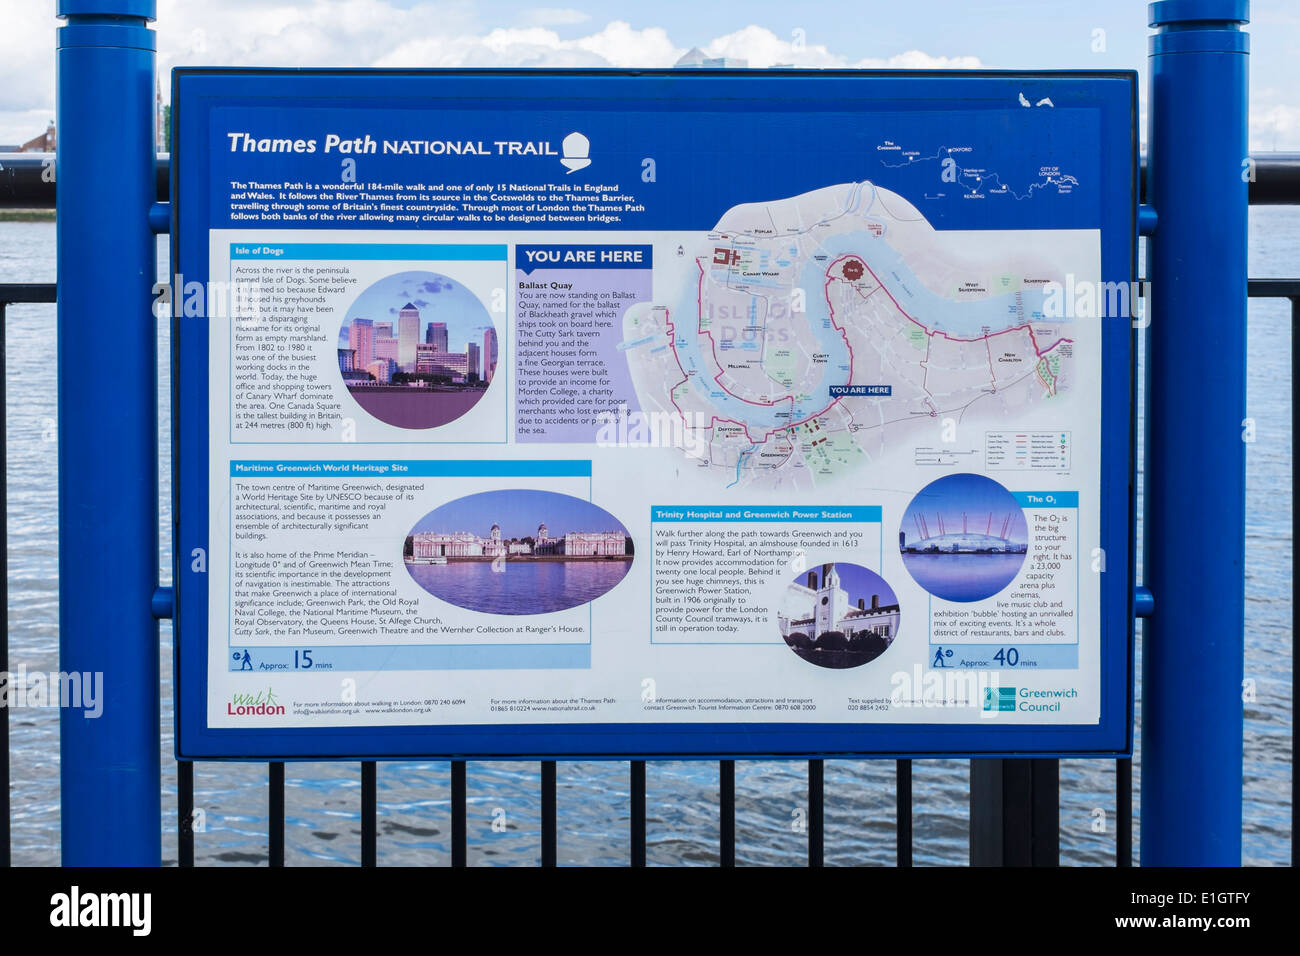 Thames Path National Route sign and map showing route along the river Thames, Ballast Quay, Greenwich, SE London Stock Photo